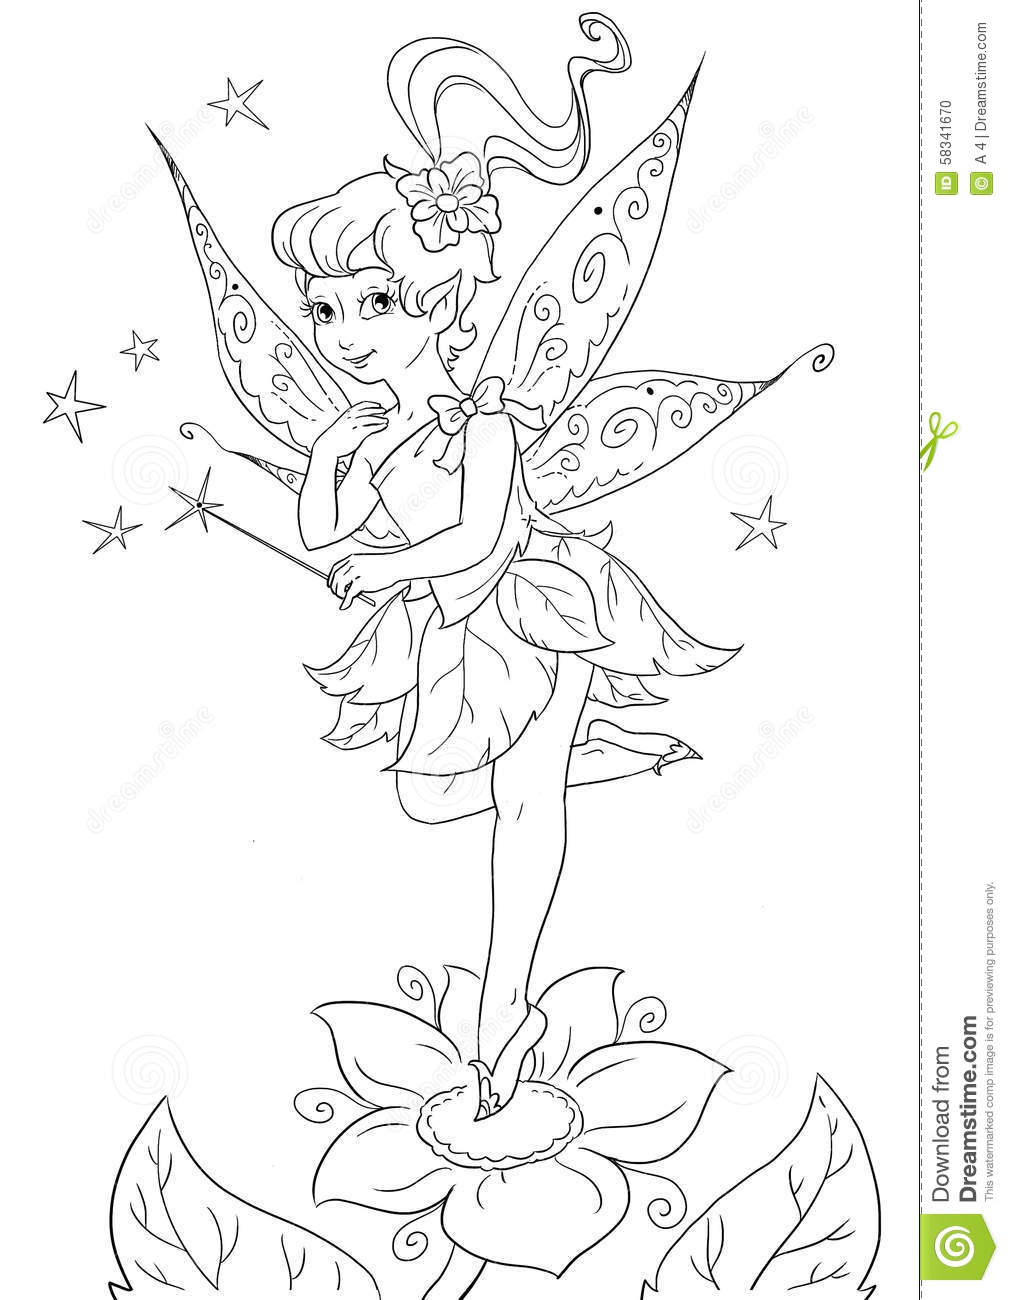 Flower fairy coloring page stock illustration image for Flower fairy coloring pages